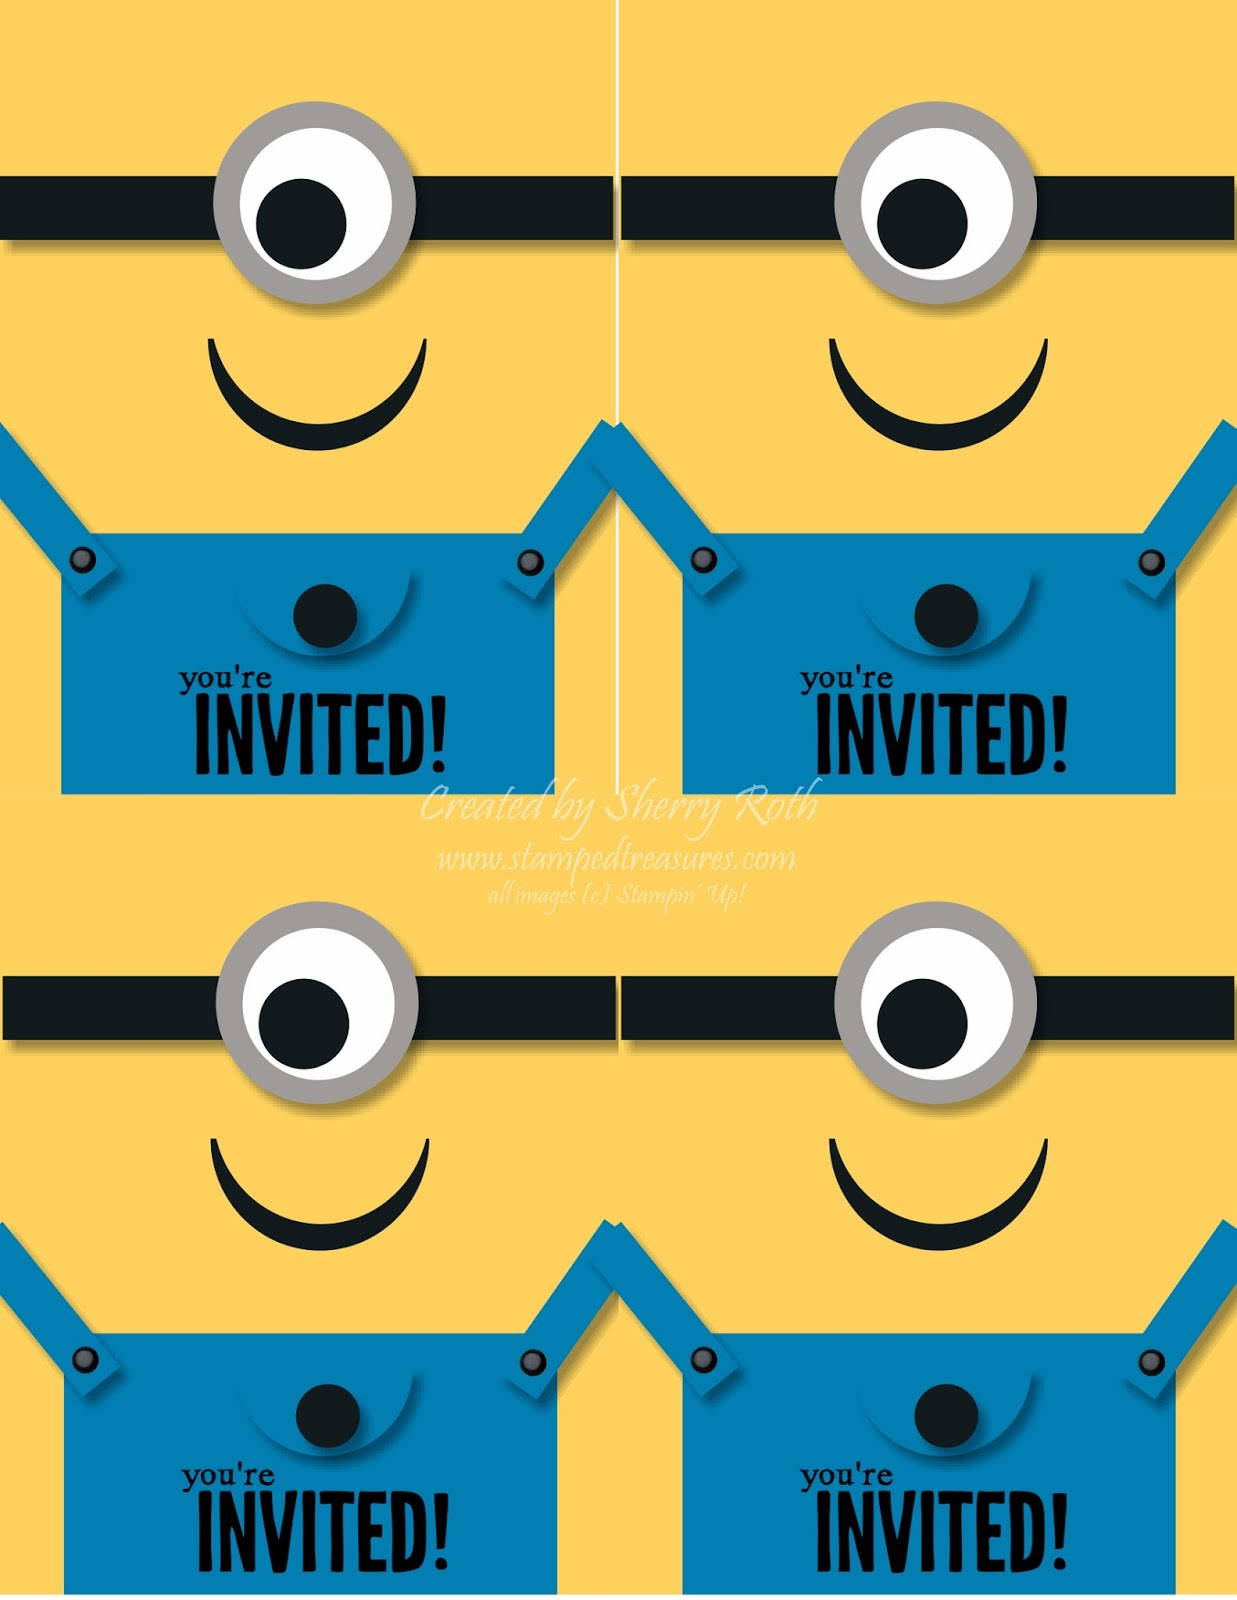 Sherrys Stamped Treasures Minion Birthday Invitations